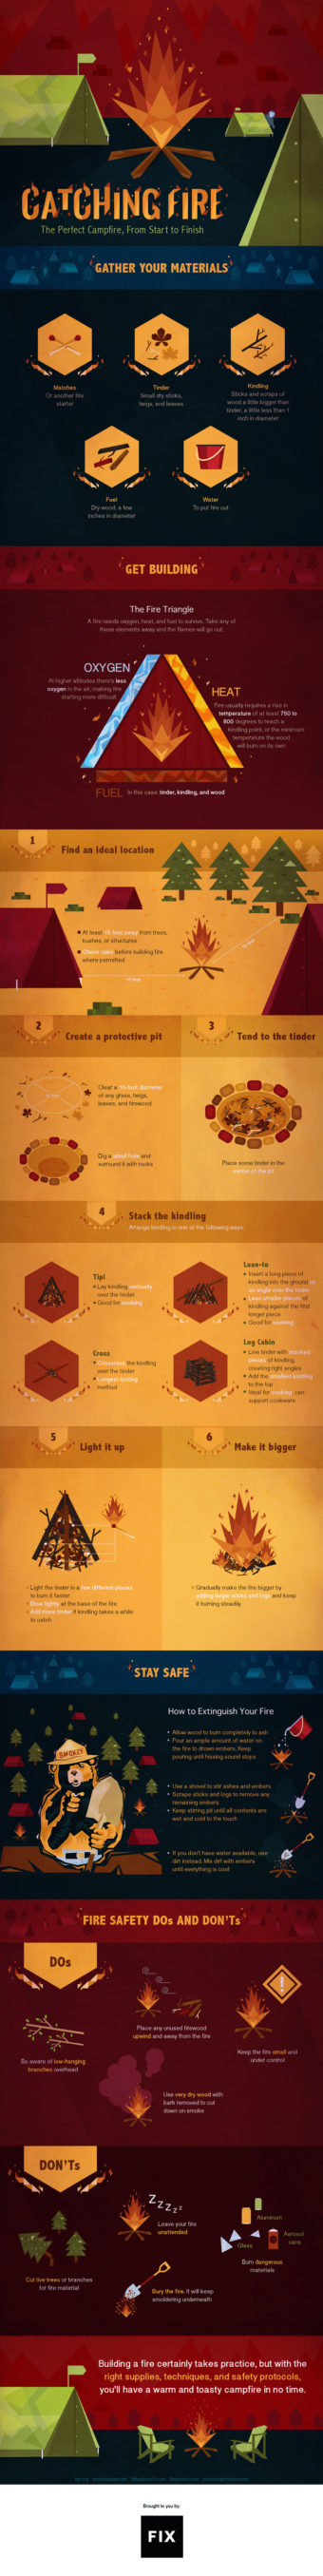 GENERAL TIPS 3: How to build a campfire